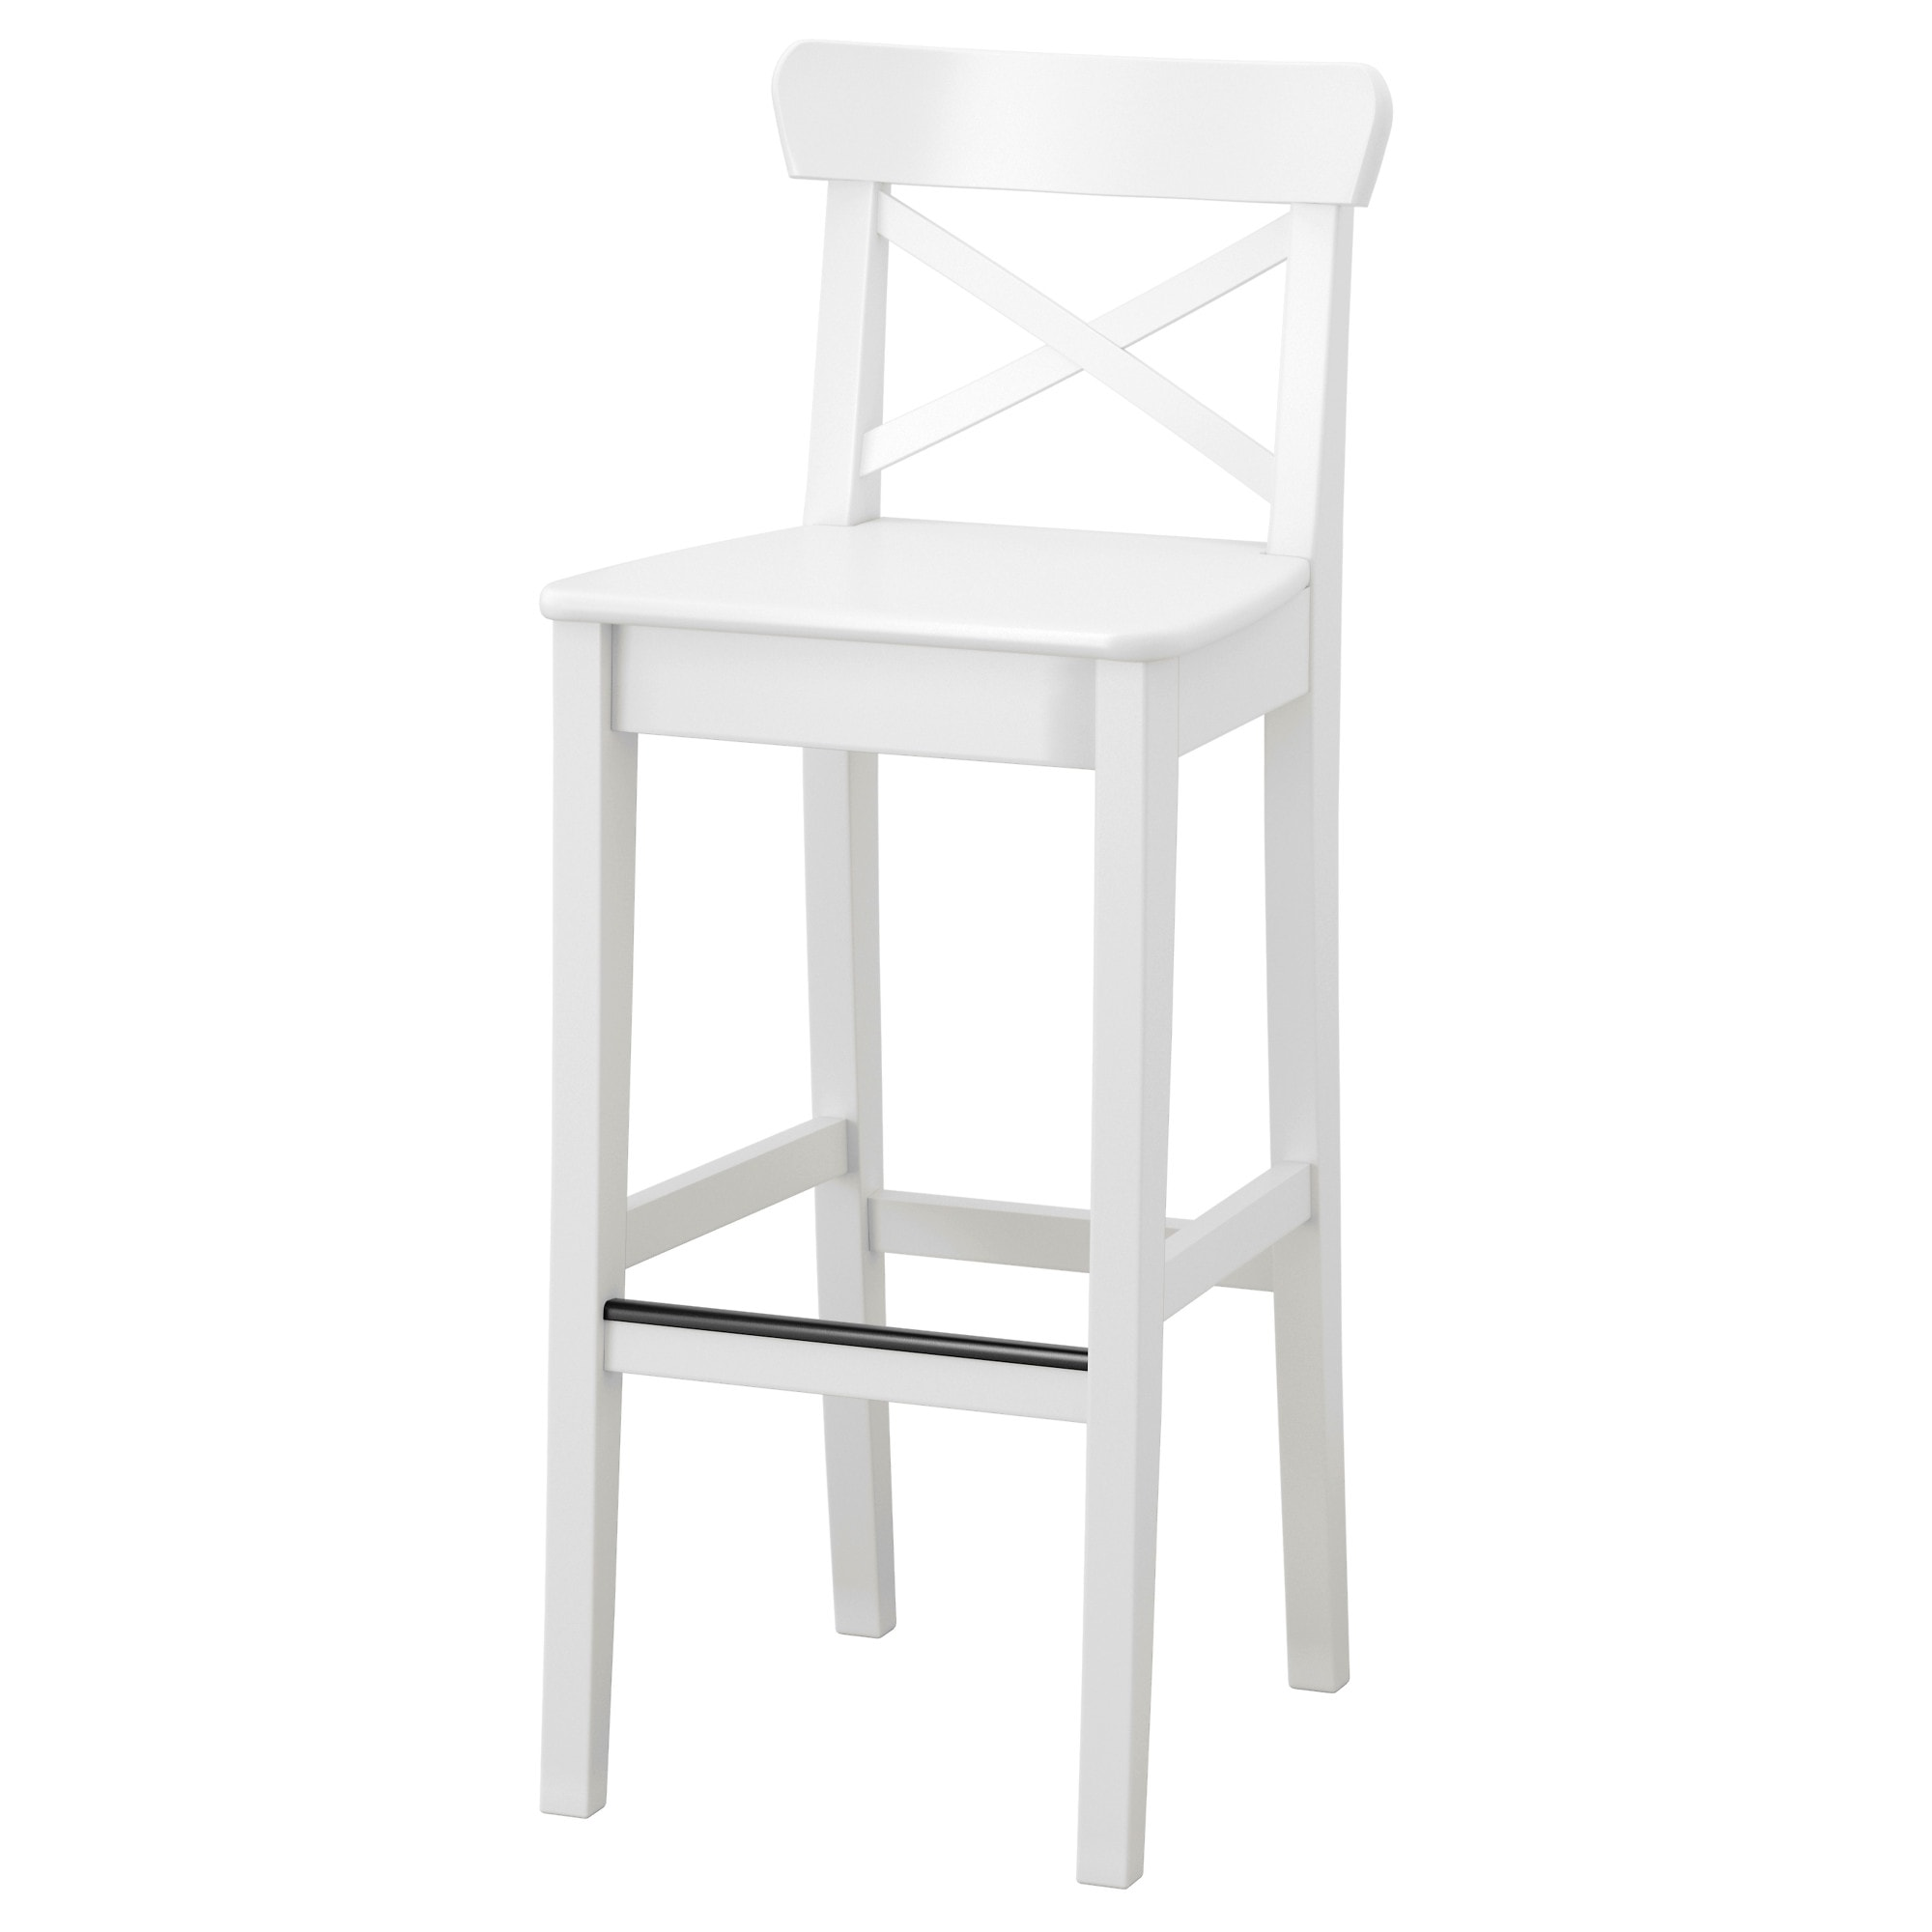 INGOLF Bar stool with backrest - 63 cm - IKEA